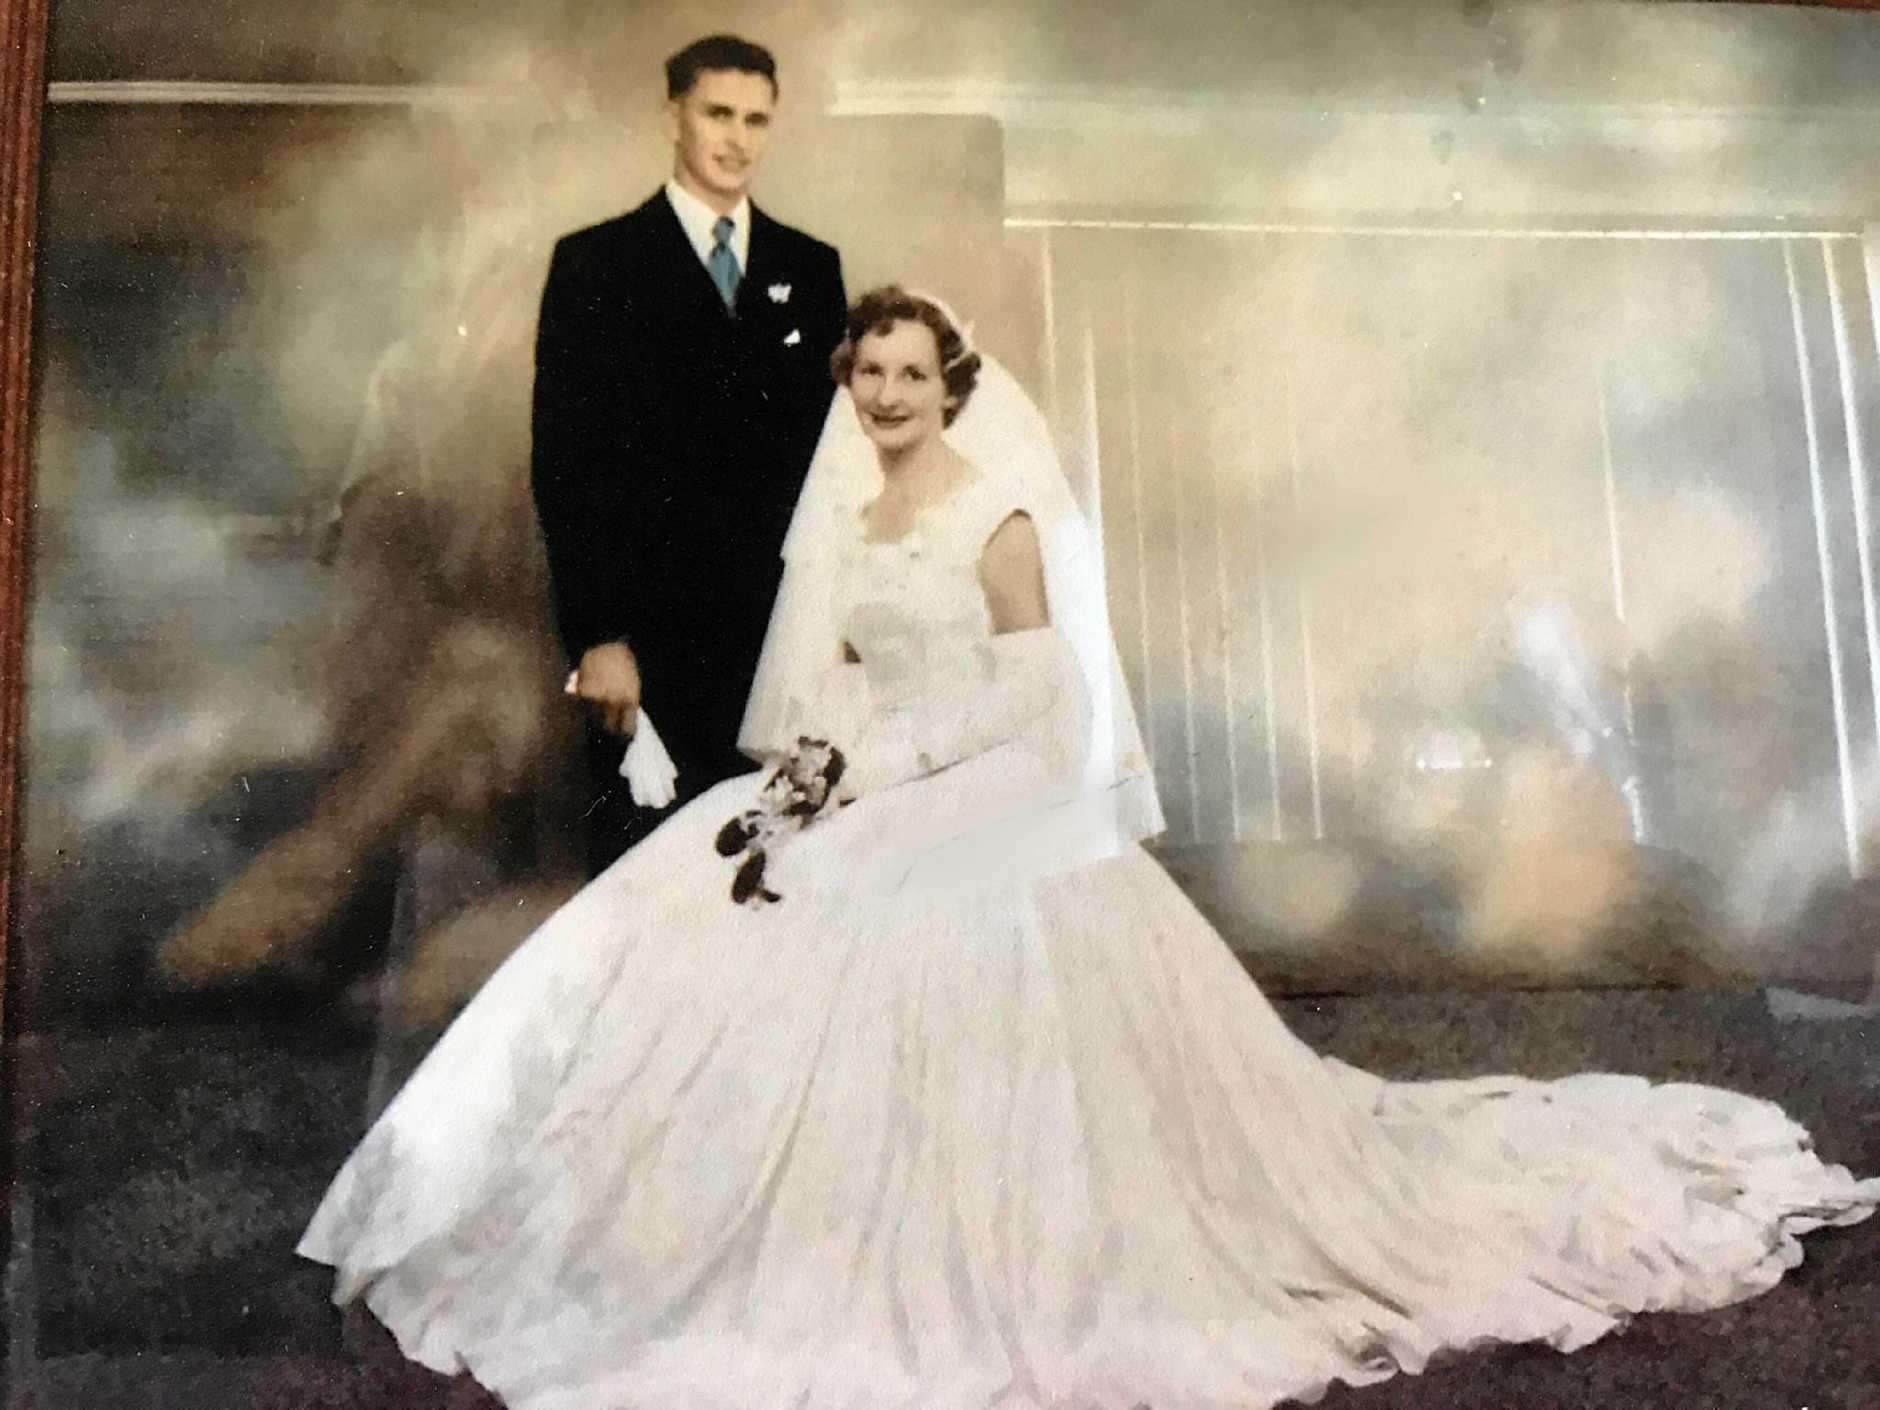 LOVE STORY: Colleen and Ken Anderson on their wedding day in 1957.